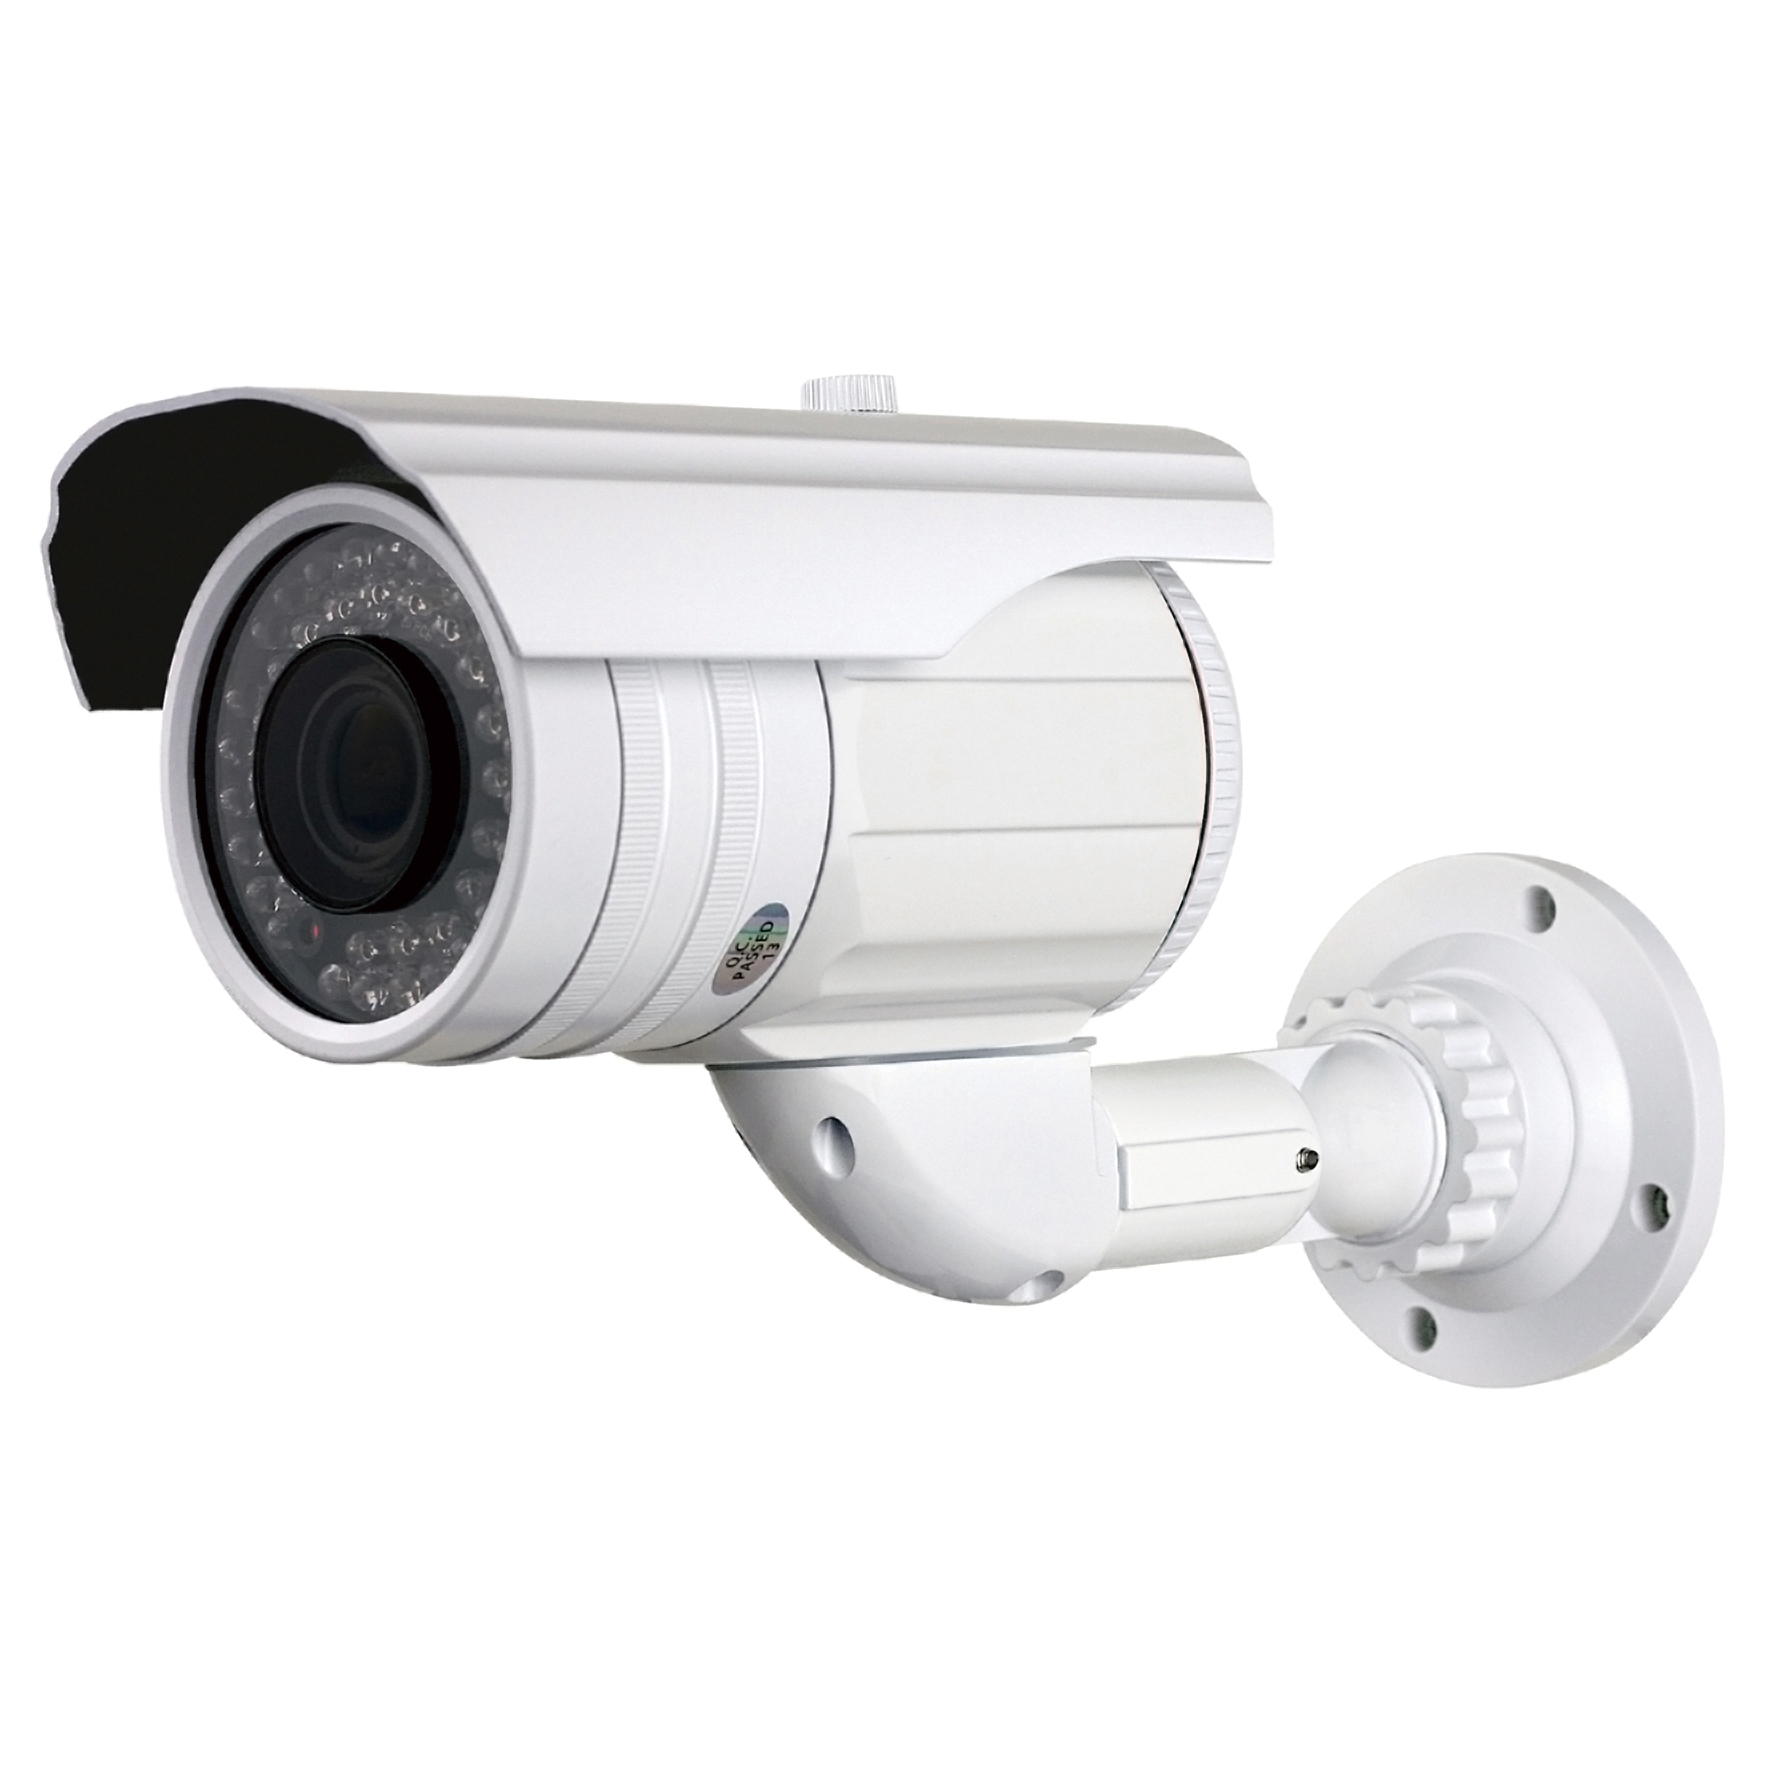 Triax 700TVL 960H Varifocal Bullet Camera 36mtr IR (White)